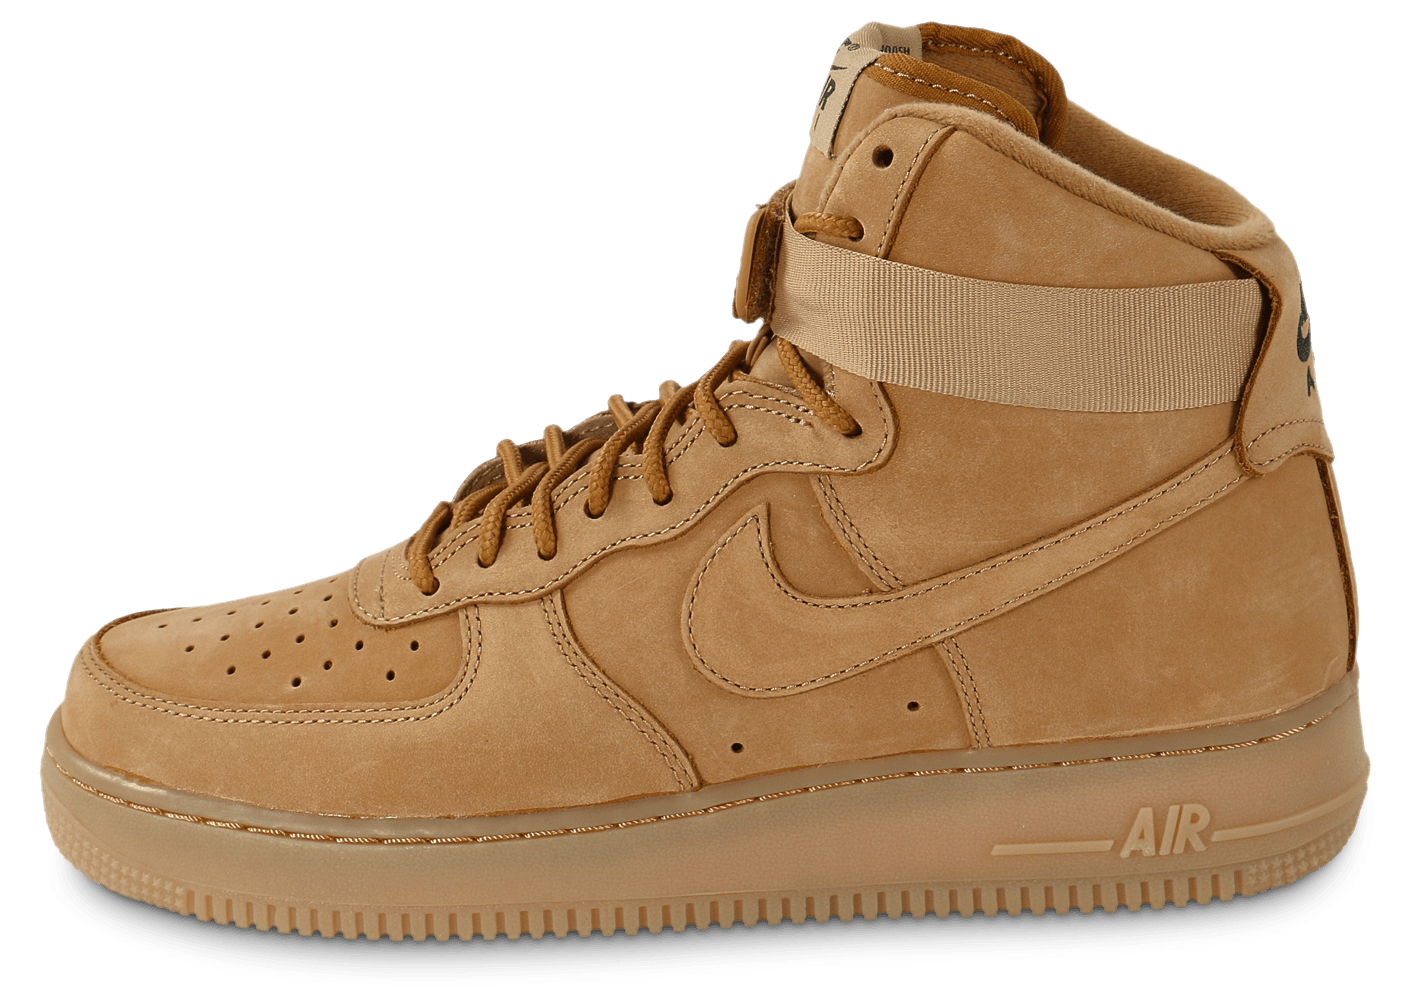 Nike Air Force 1 High '07 LV8 Flax - Chaussures Baskets homme - Chausport